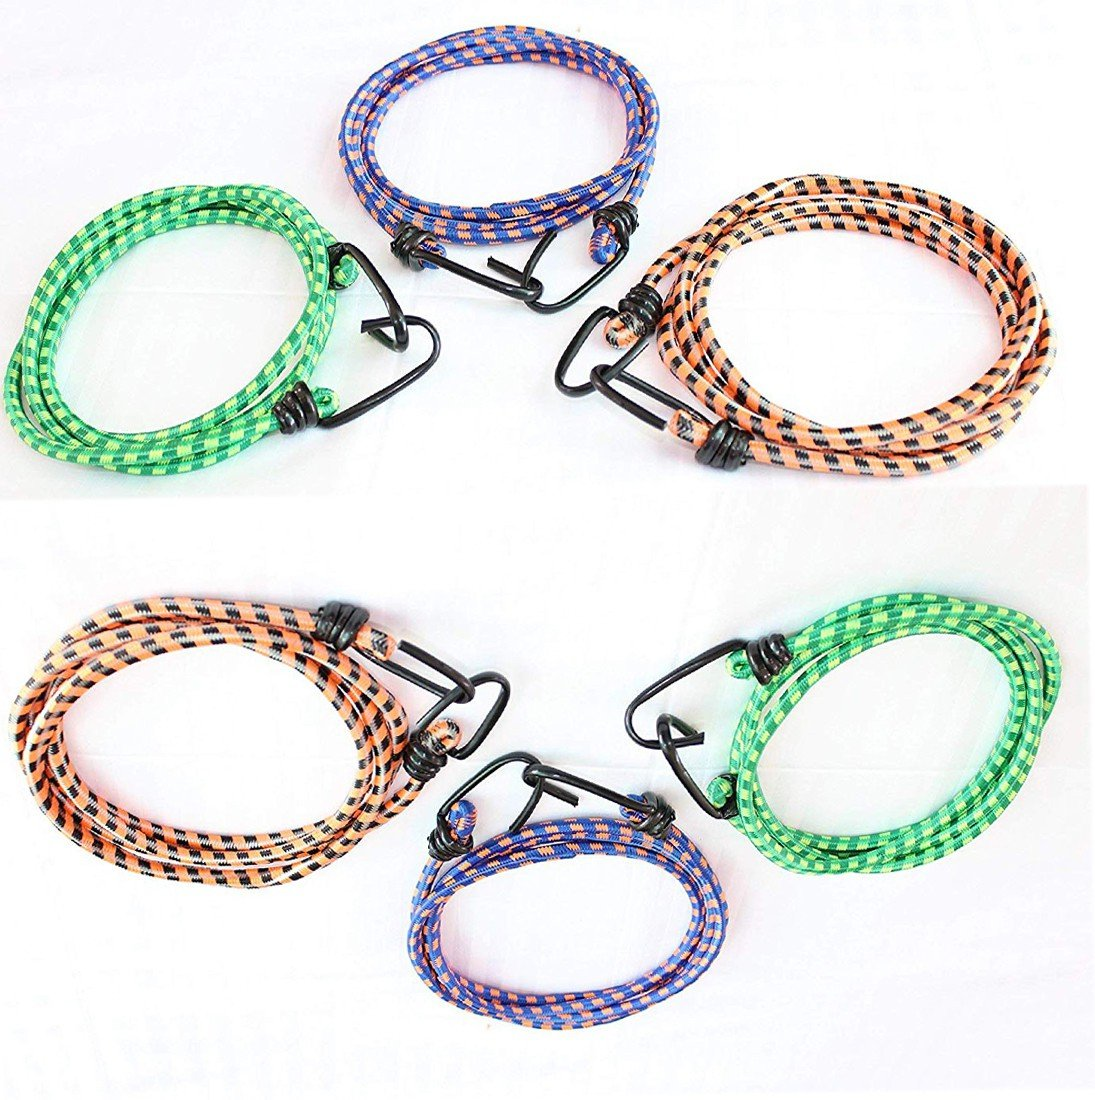 MGP Fashion HighElastic Rope Bungee Shock Cord Cable Luggage with Hook Green,Blue,Brown  (Length: 2 m, Diameter: 10 mm)